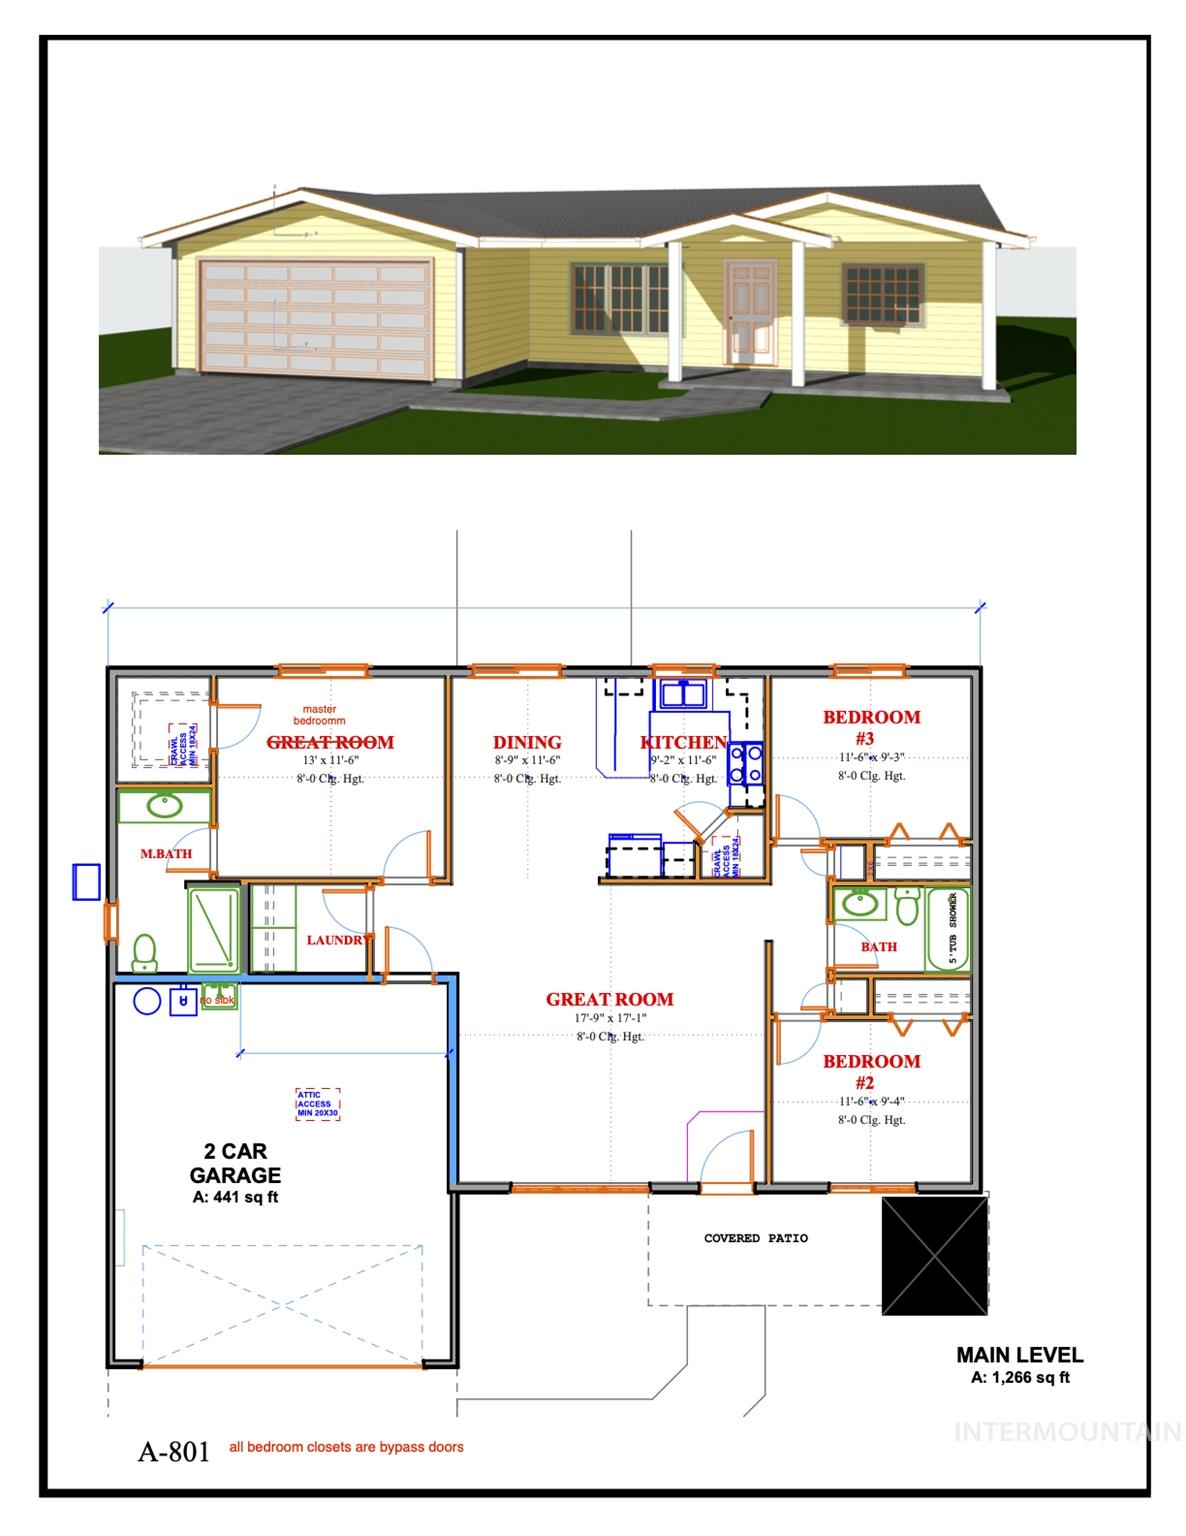 841 E Freedom, Emmett, Idaho 83617-0000, 1 Bedroom, 1 Bathroom, Residential For Sale, Price $241,900, 98784614